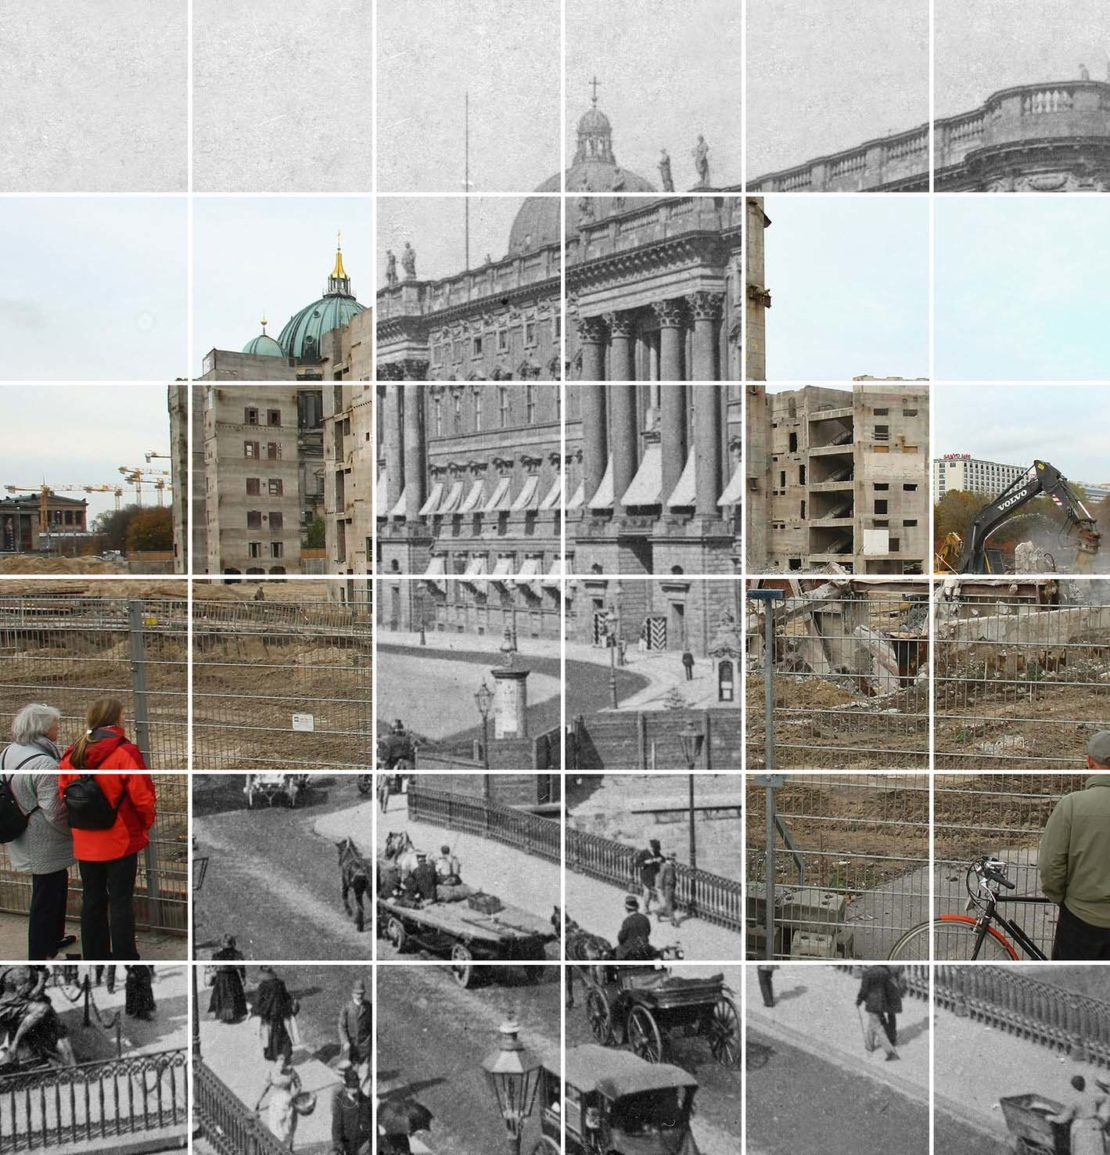 Photo montage of Berlin's 18th century City Palace in its original sombre grandeur, and the current building project recreating it on the same site